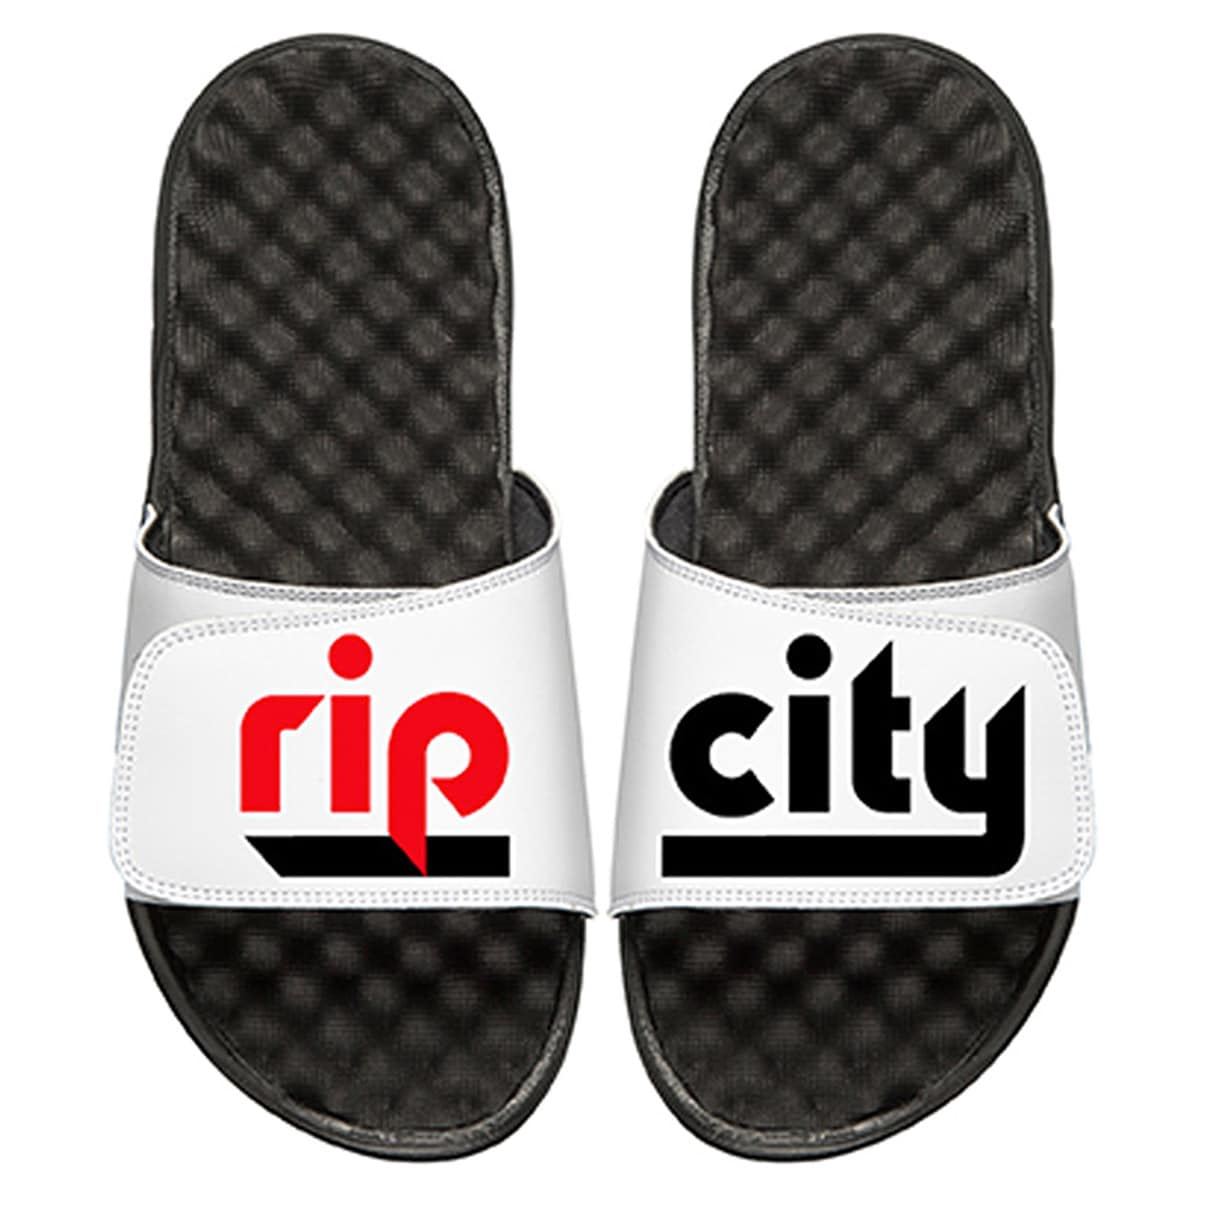 Portland Trail Blazers ISlide Team Slogan Slide Sandals - Black/White